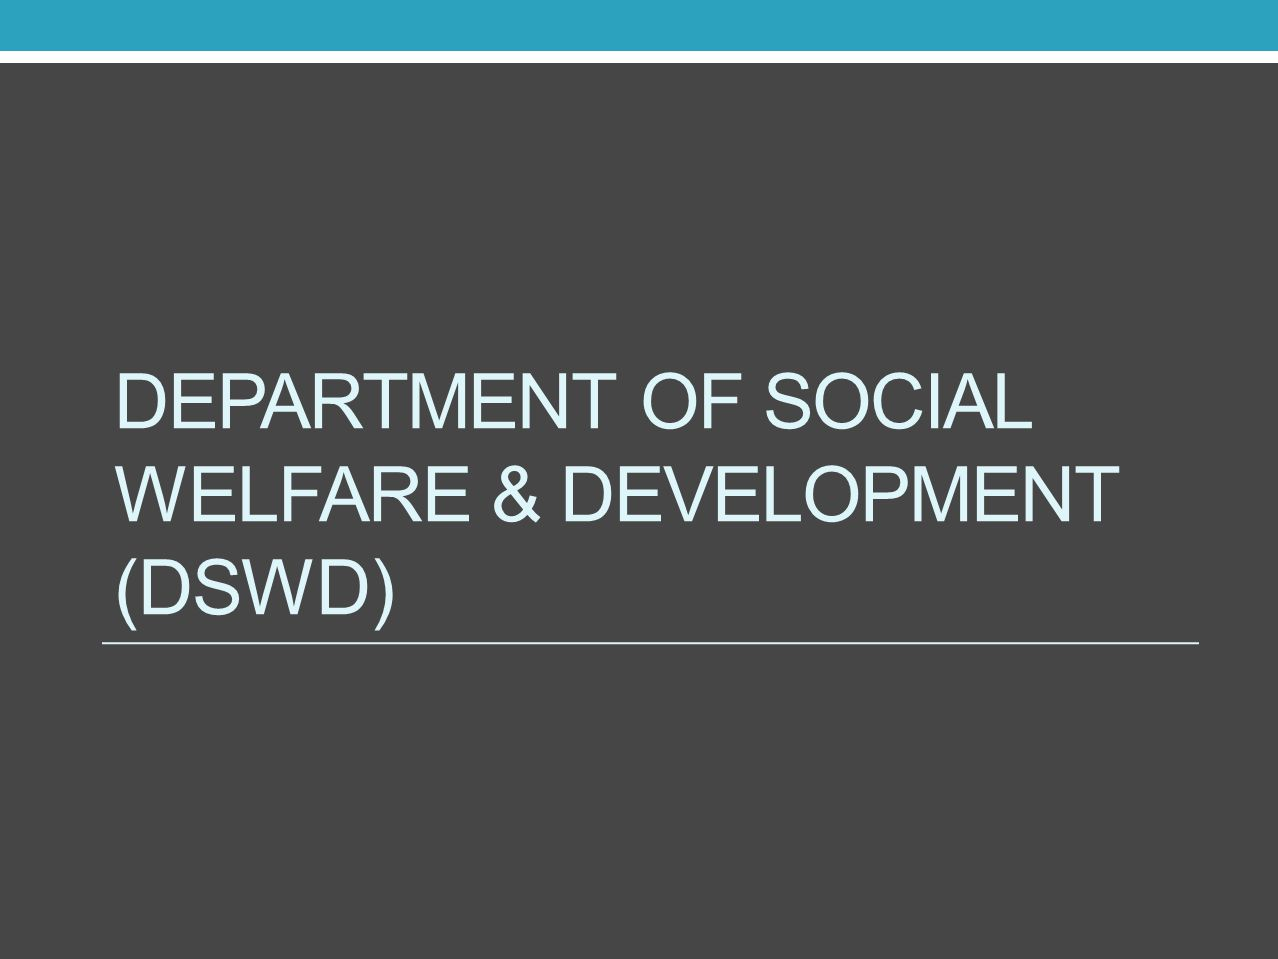 Department of social welfare & development (dswd)